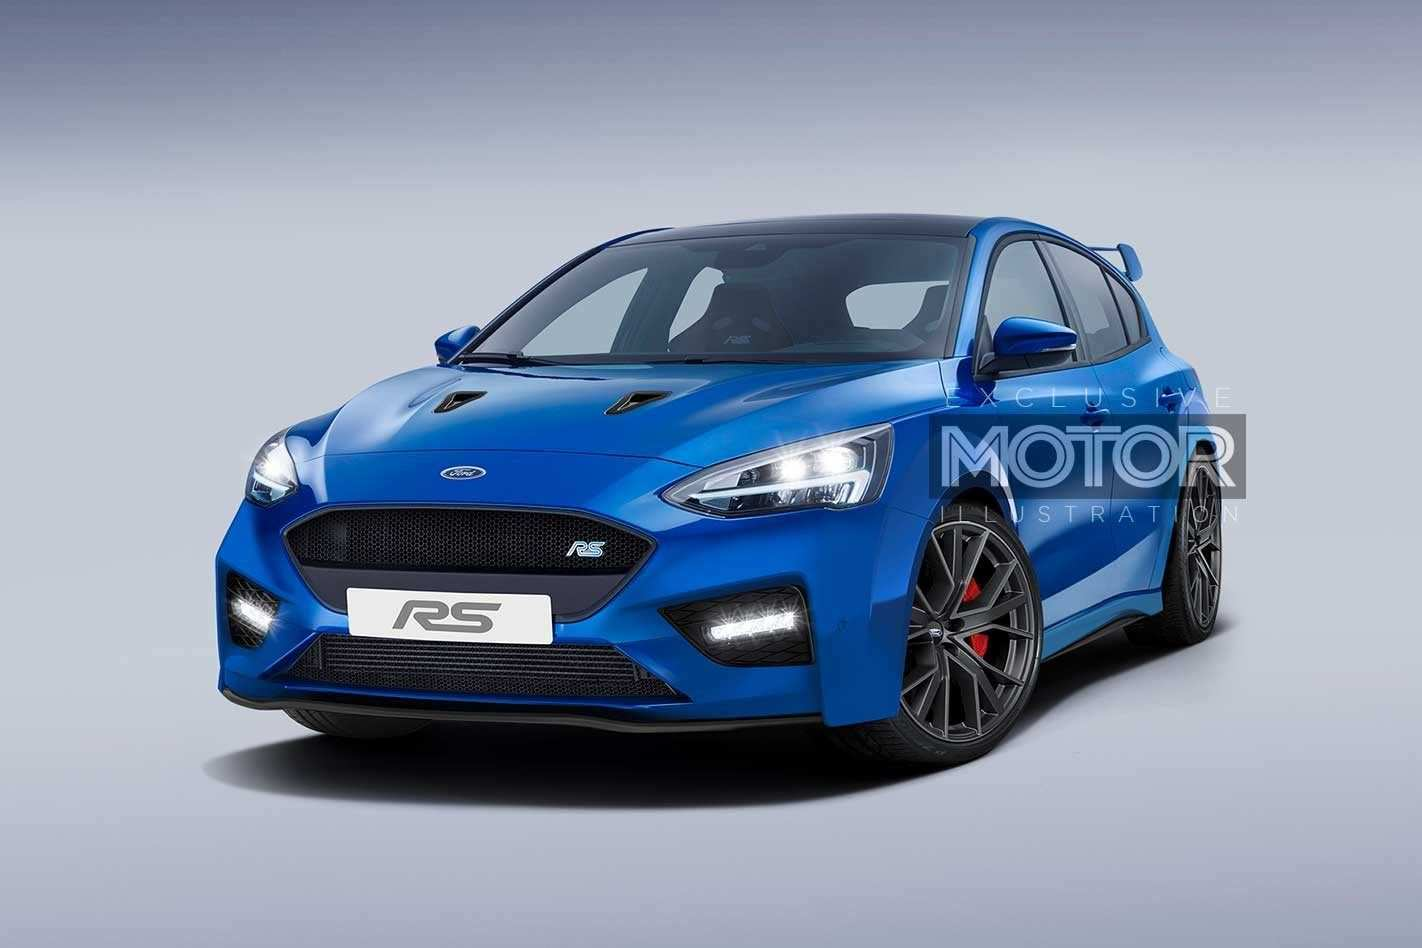 40 Gallery of 2020 Ford Fiesta St Rs Speed Test for 2020 Ford Fiesta St Rs